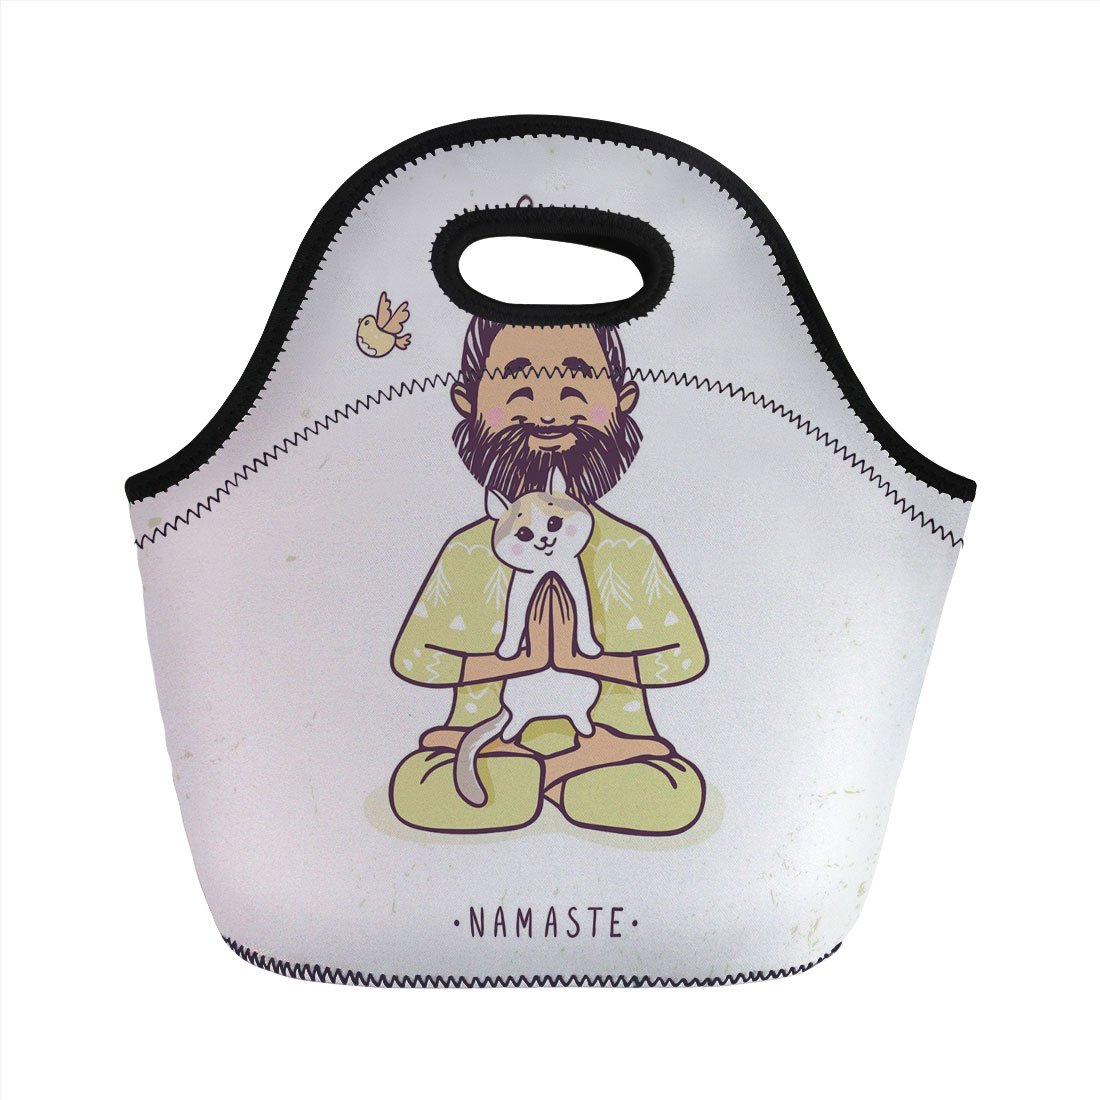 06301e6014 Neoprene Lunch Bag,Funny,Positive Man with Cat in Yoga Greeting Pose Namaste  Chakra Animal Love Design,Pale Green White,for Kids Adult Thermal Insulated  ...